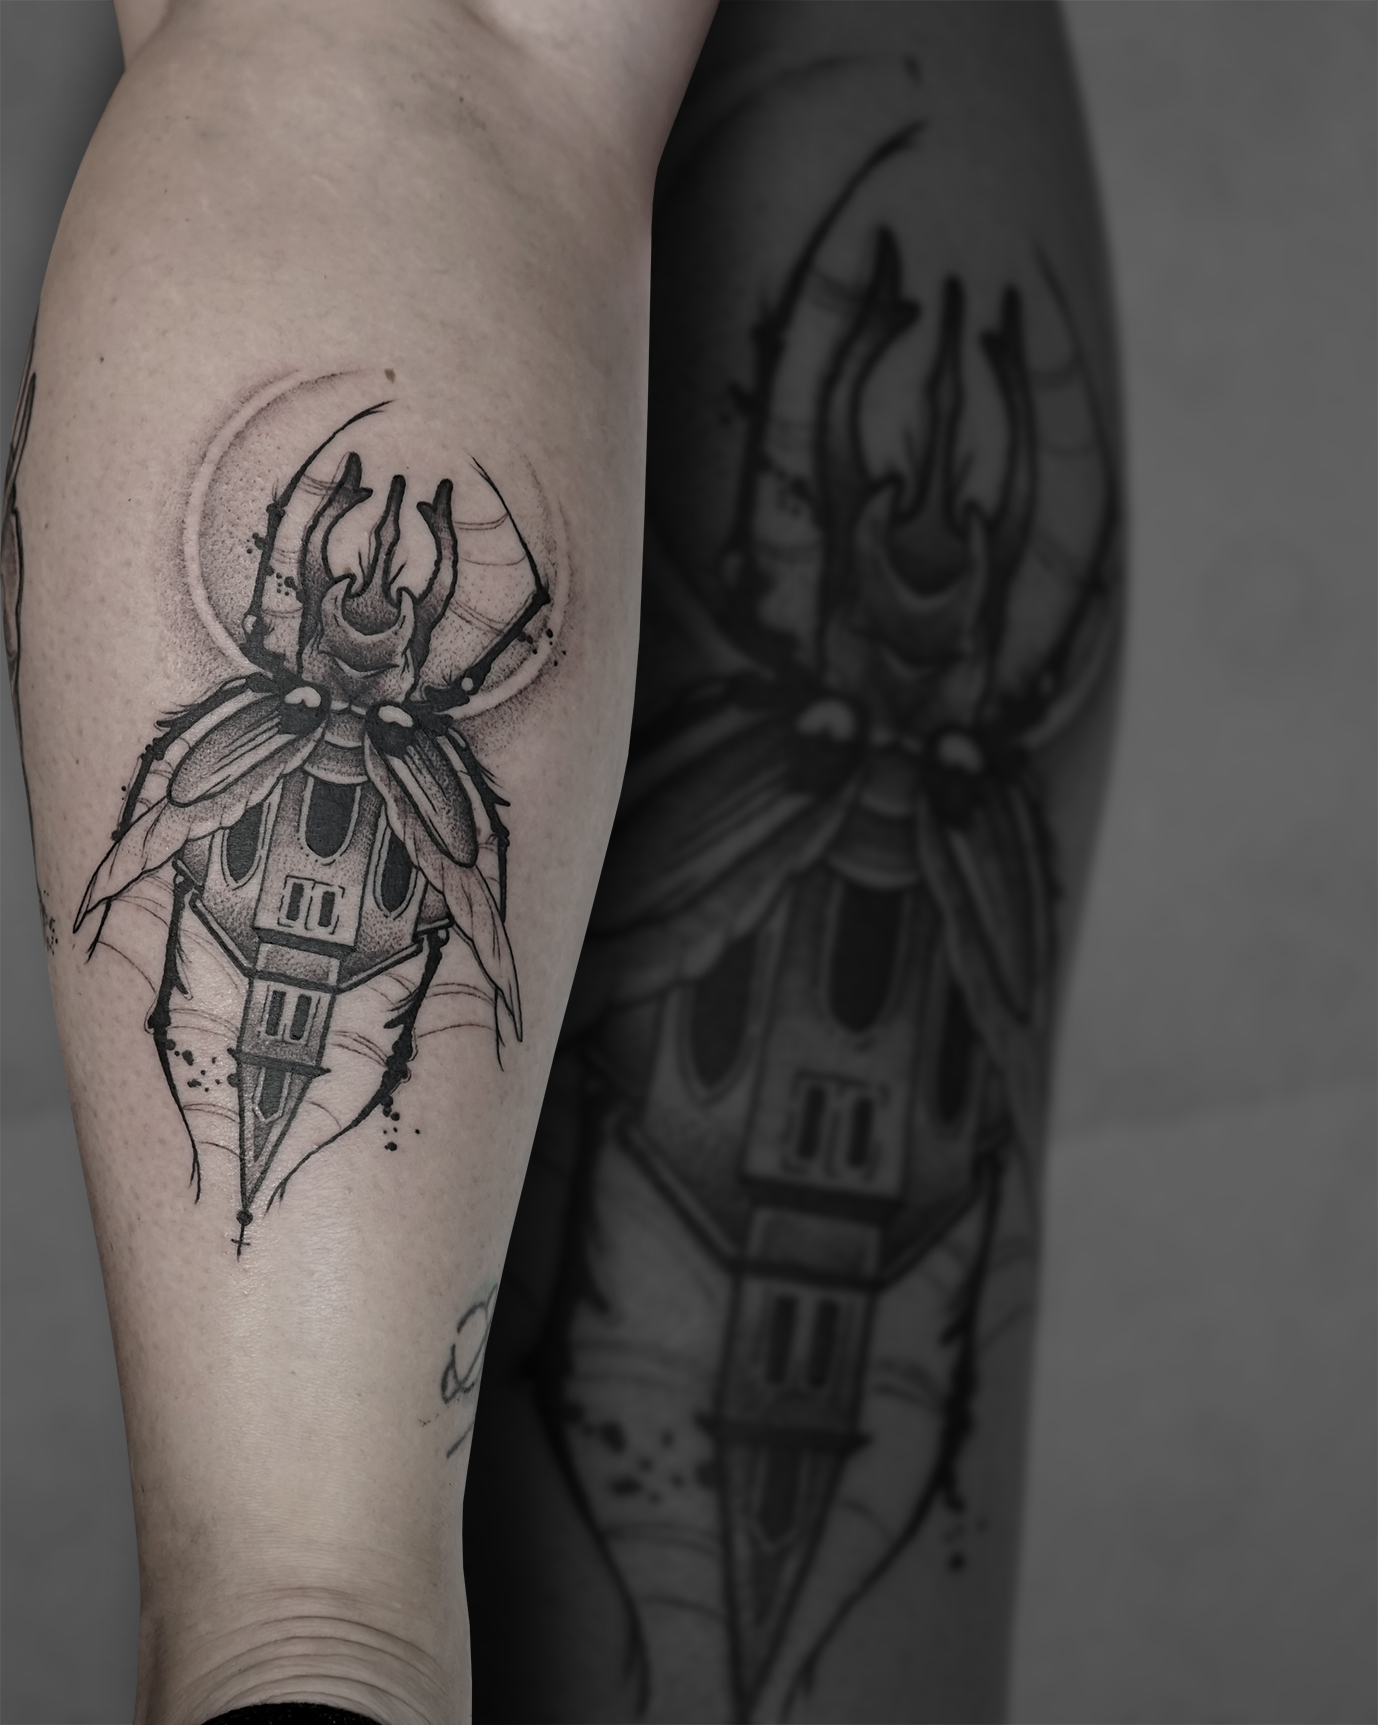 Tattoo Zincik - Bug church black tattoo.